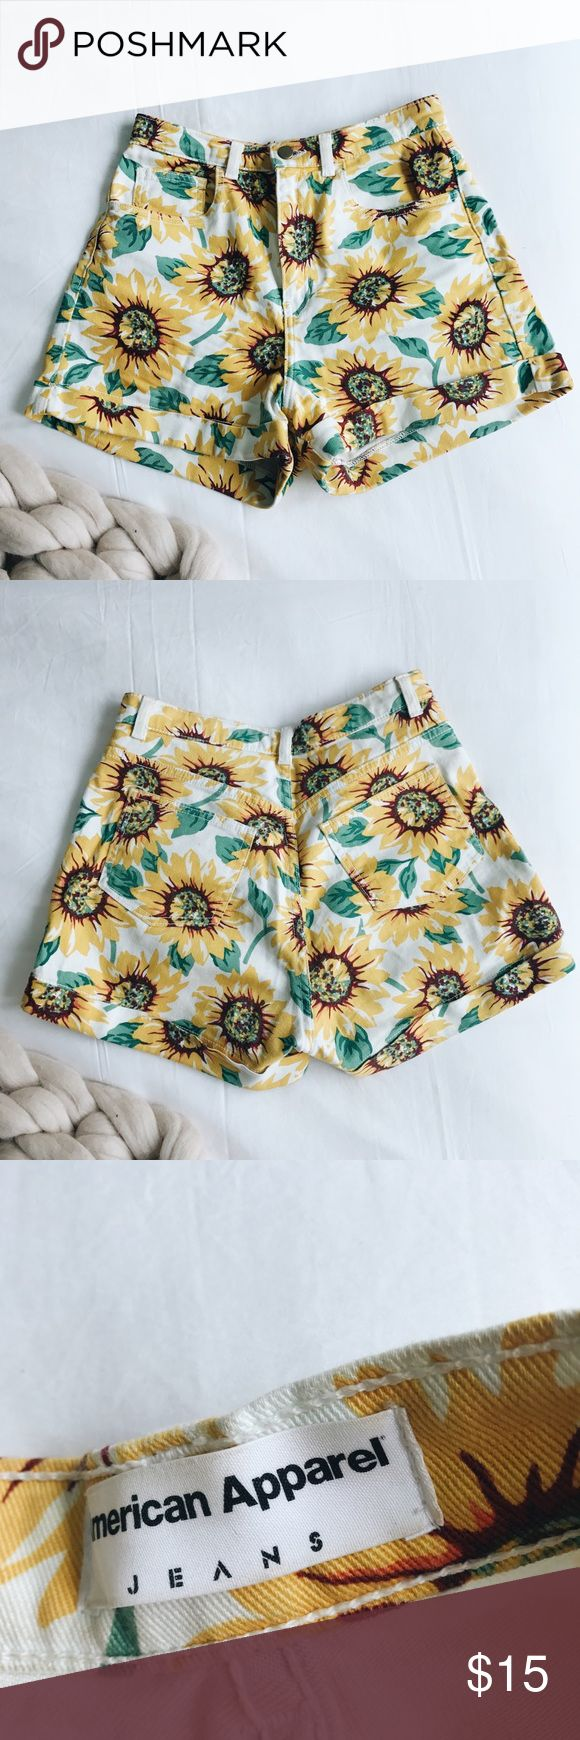 American Apparel Shorts These super cute sunflower shorts are perfect for summer! Only been worn a few times. American Apparel Shorts